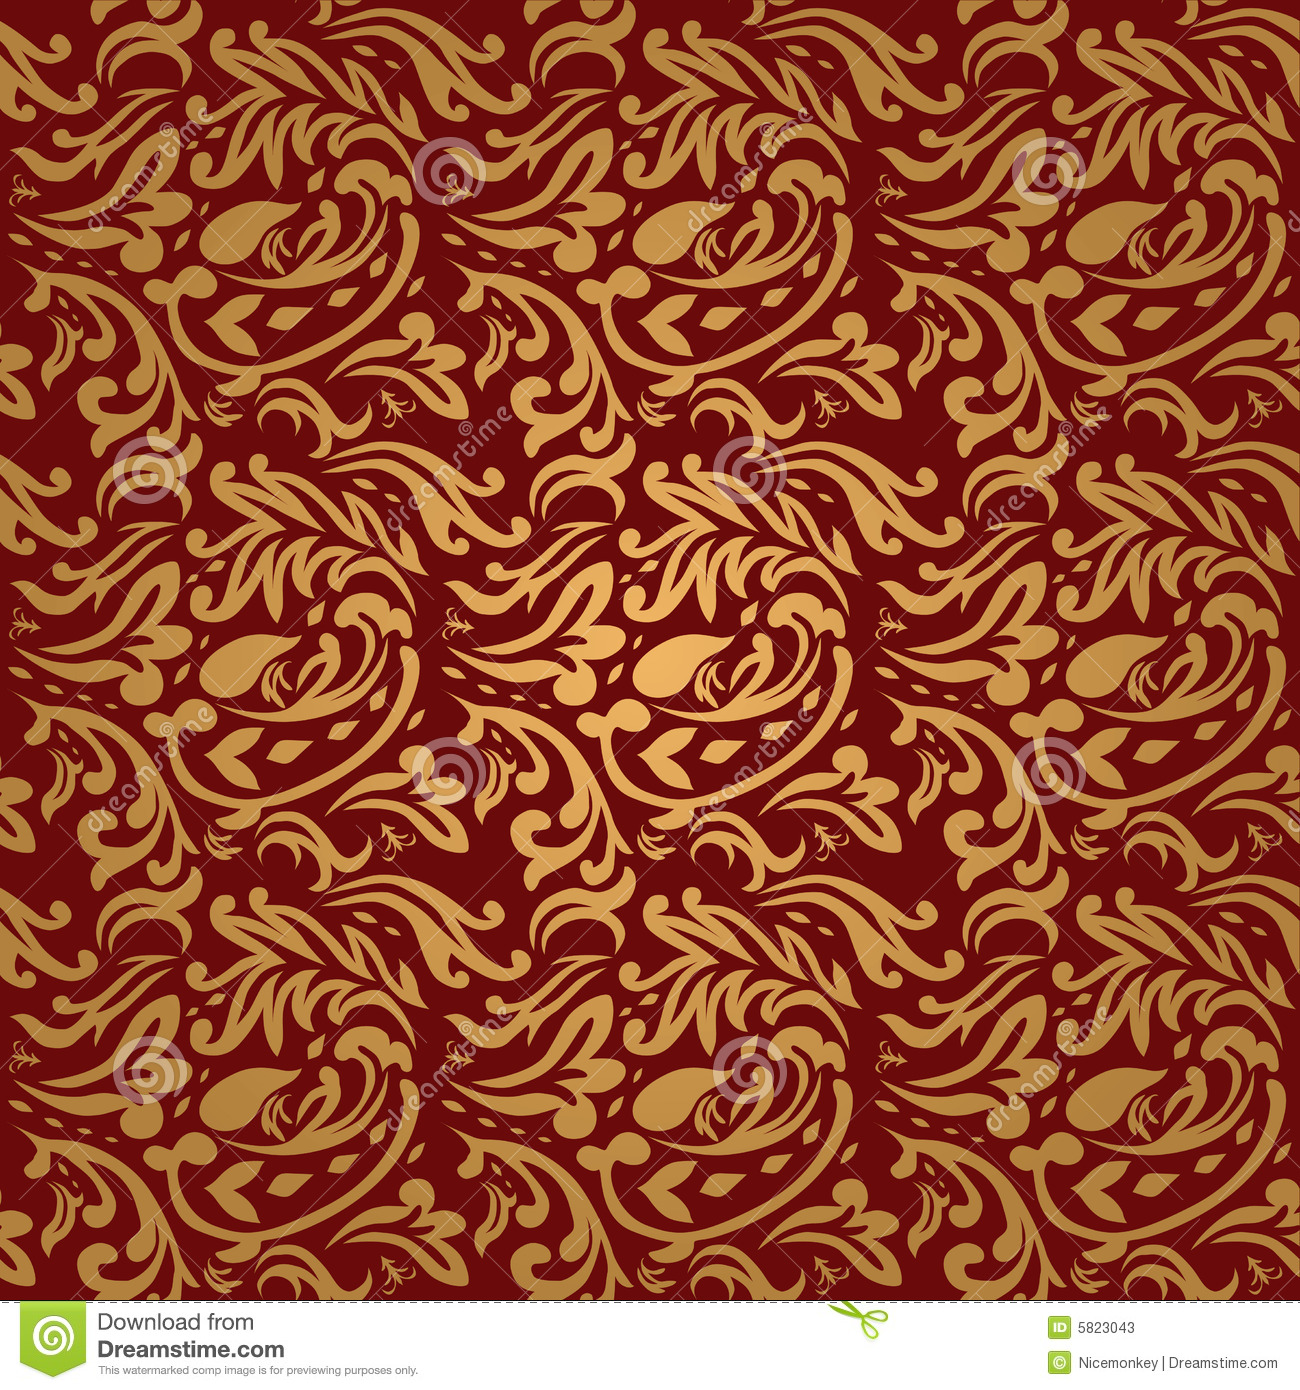 Floral Maroon Stock Vector. Image Of Scroll, Damask